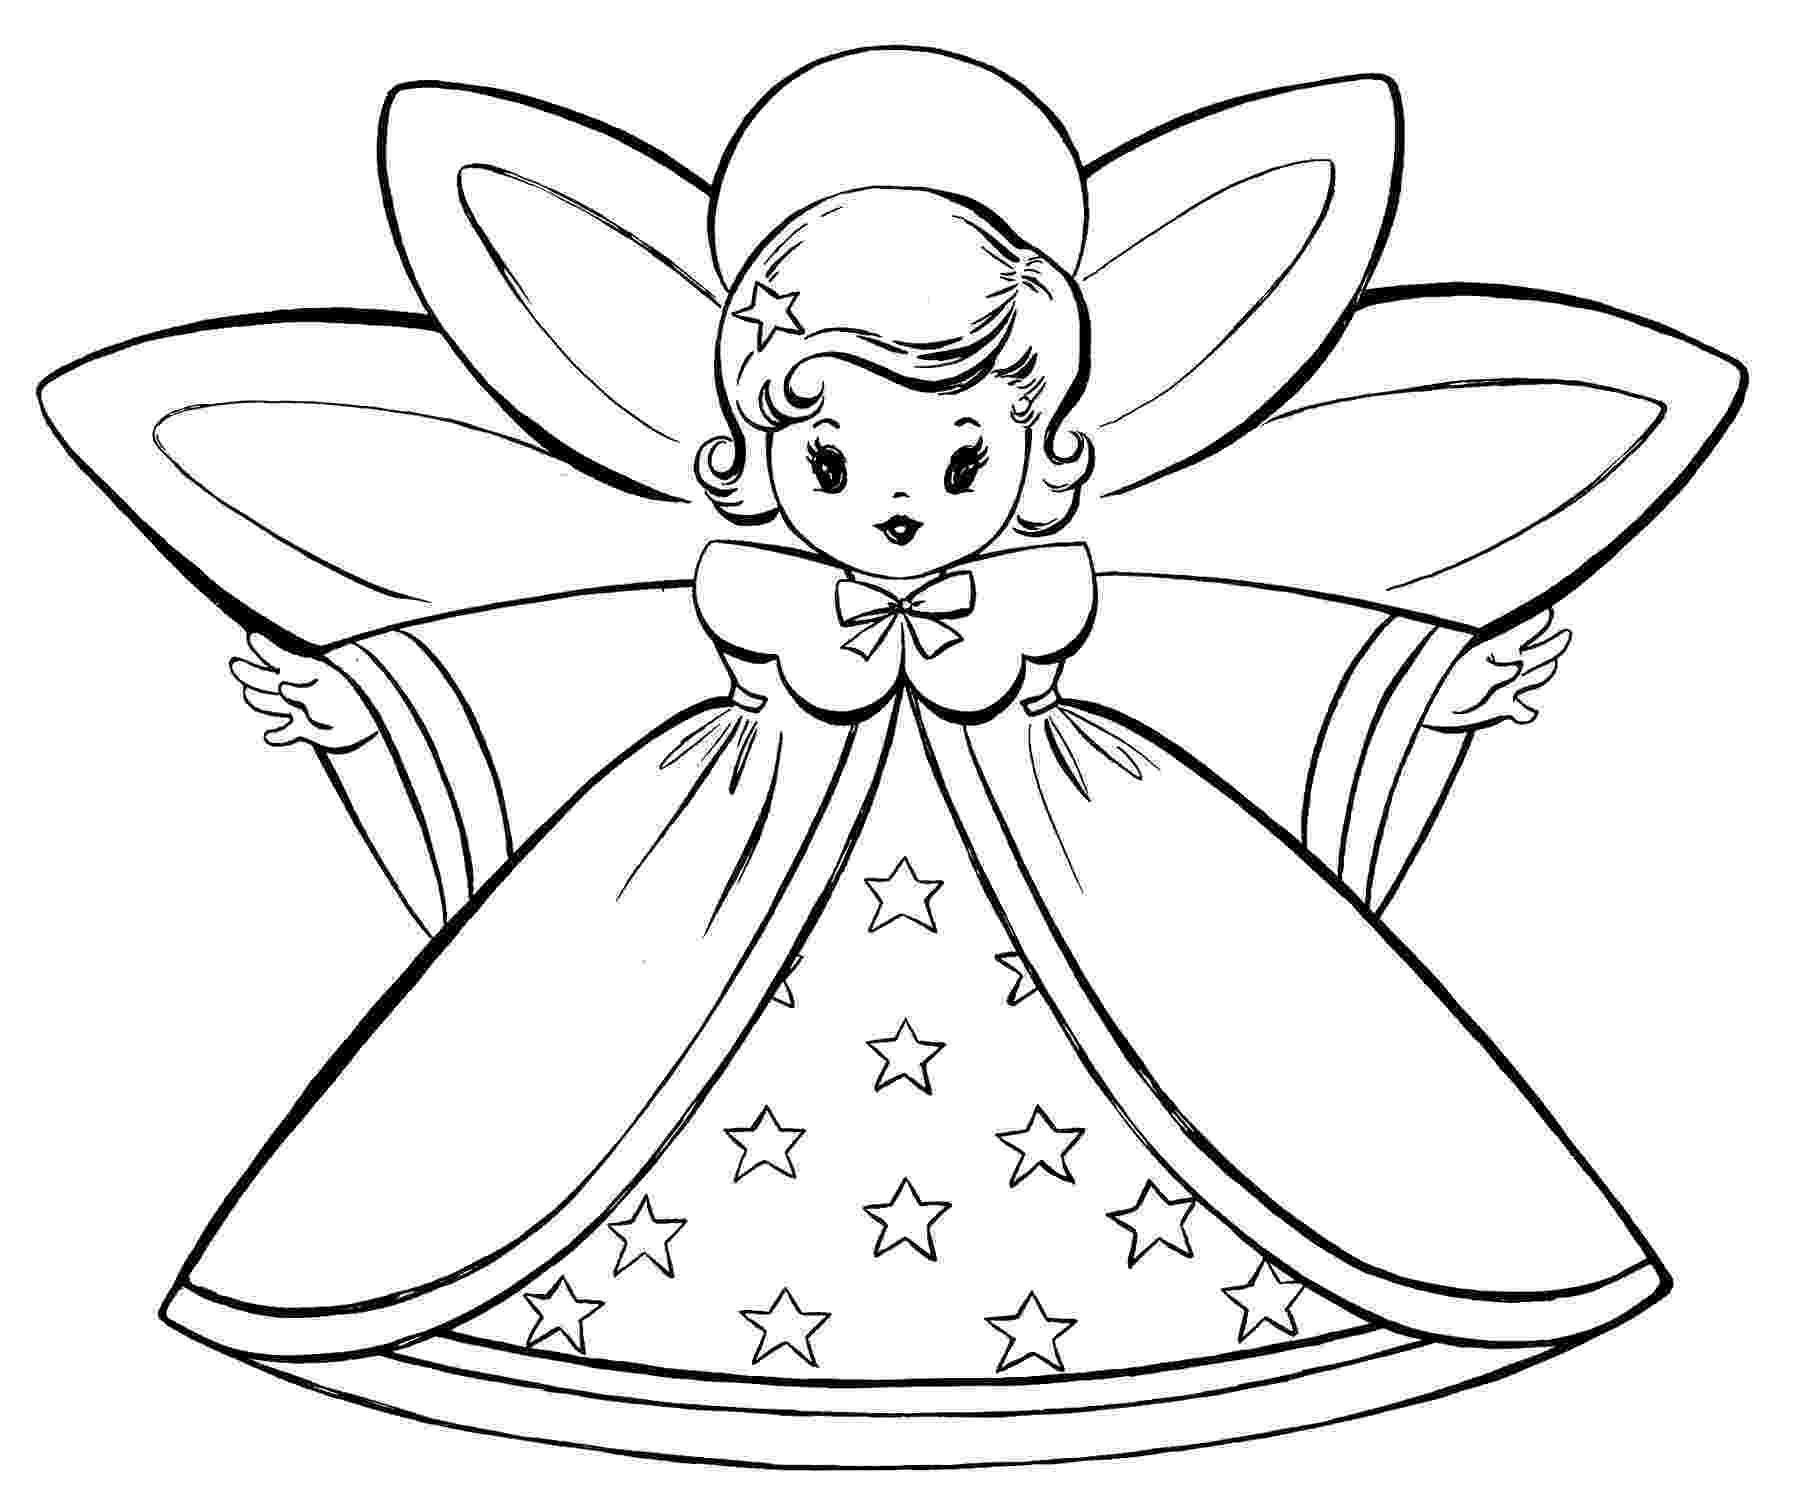 angel coloring pictures christmas angel coloring page crafting the word of god coloring angel pictures